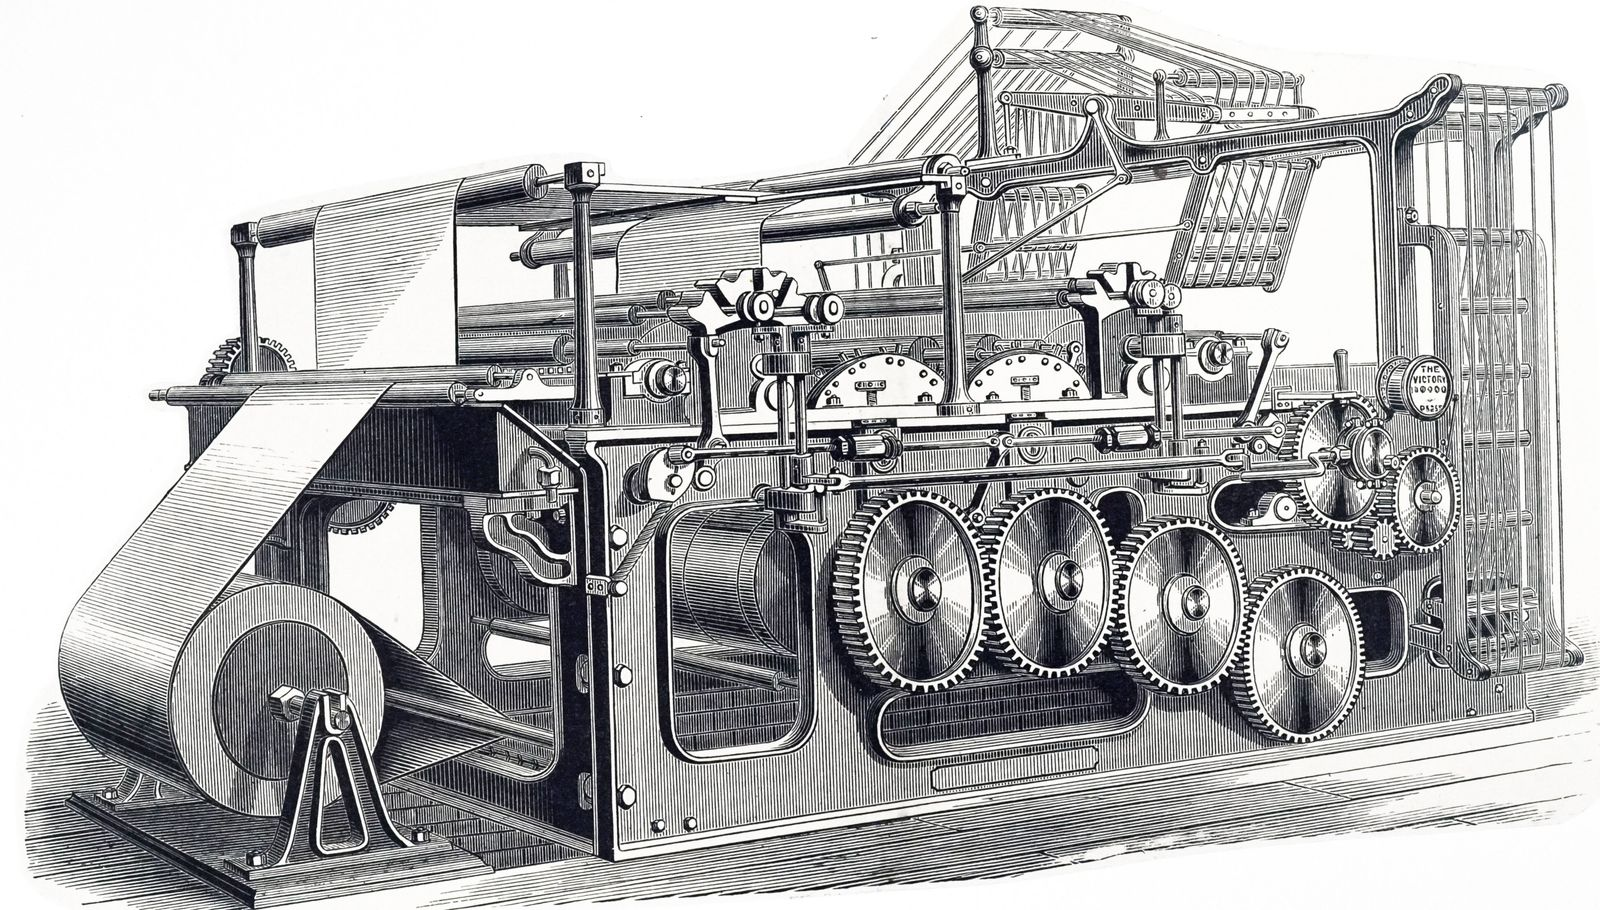 An engraving depicting the Victory web rotary press built by Duncan & Wilson of Liverpool for the G